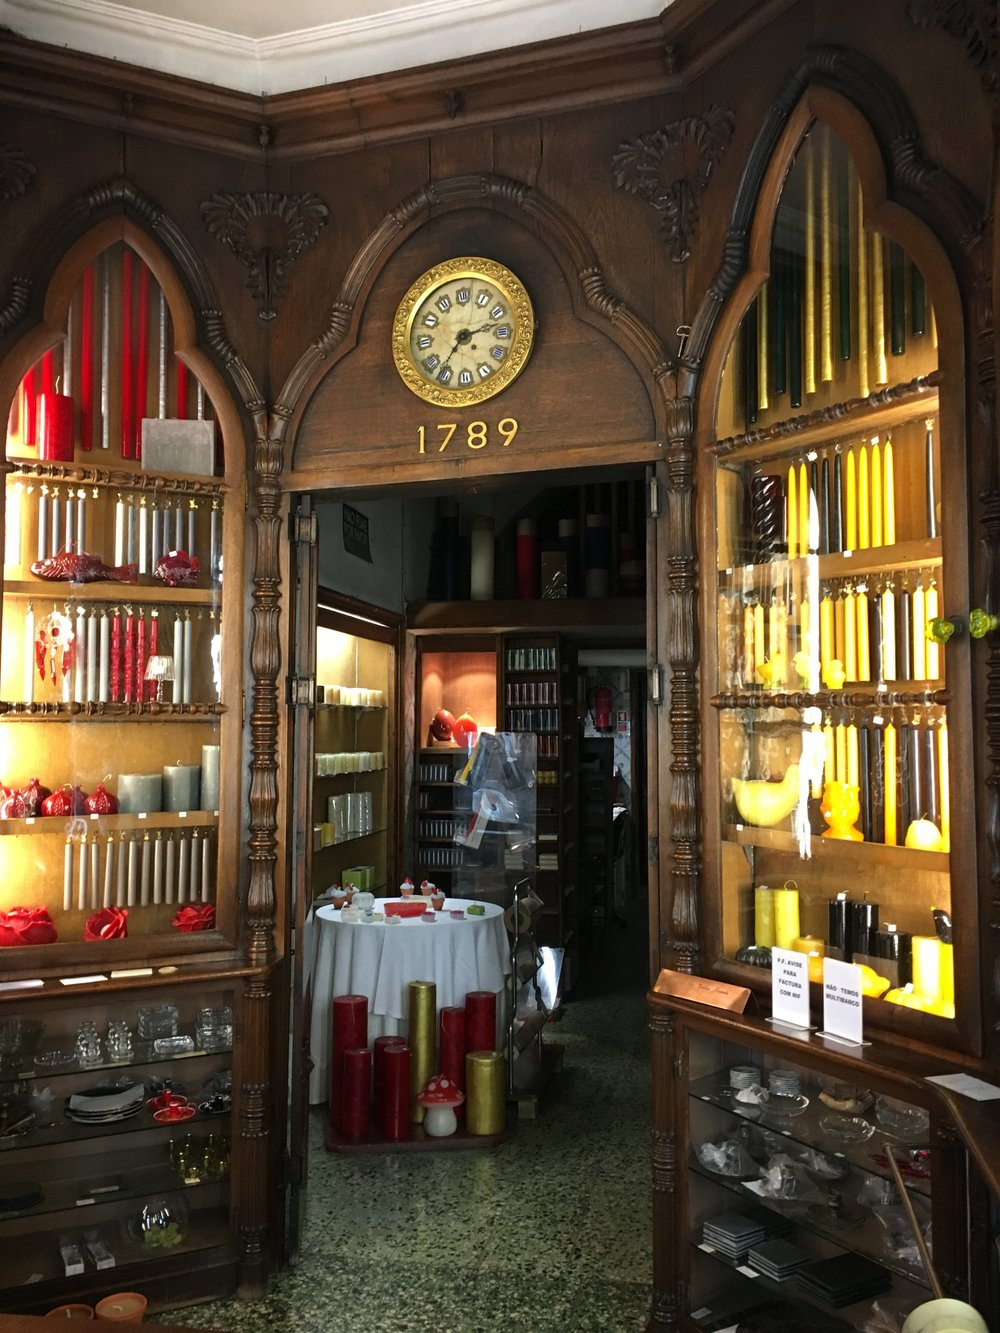 Behind the counter at Vellas Loreto Candle Shop: Notice the mushroom candle?